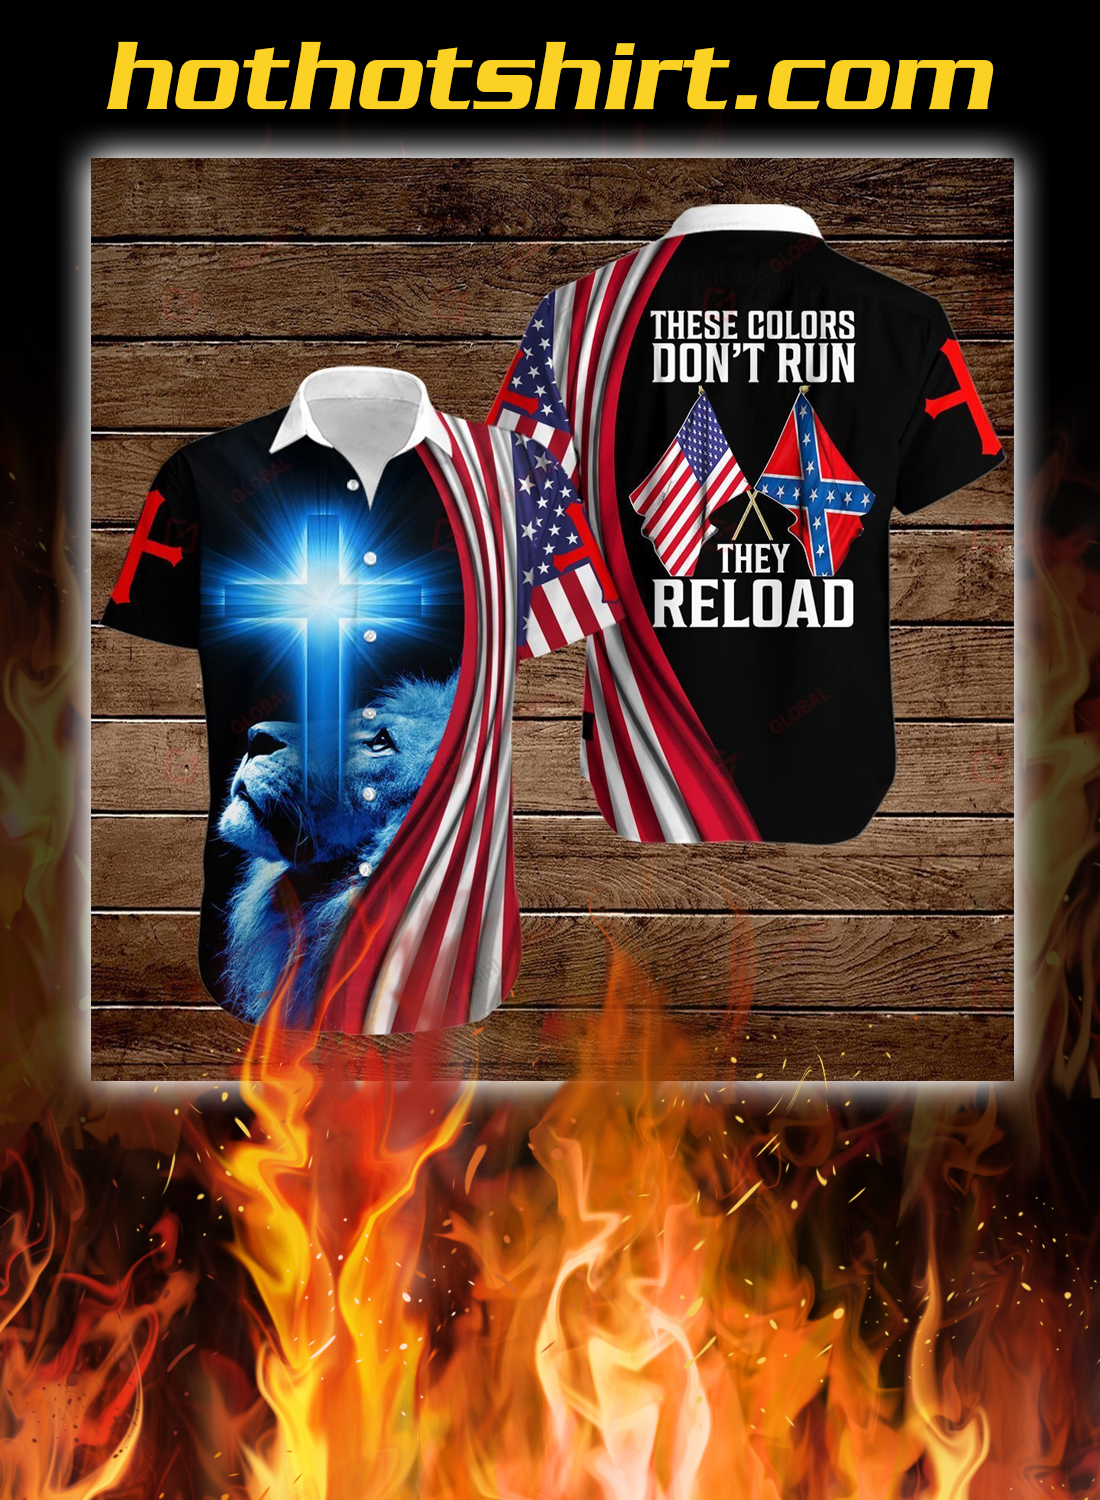 Lion confederate states of america flag these colors don't run they reload all over printed 3d hoodie, t-shirt